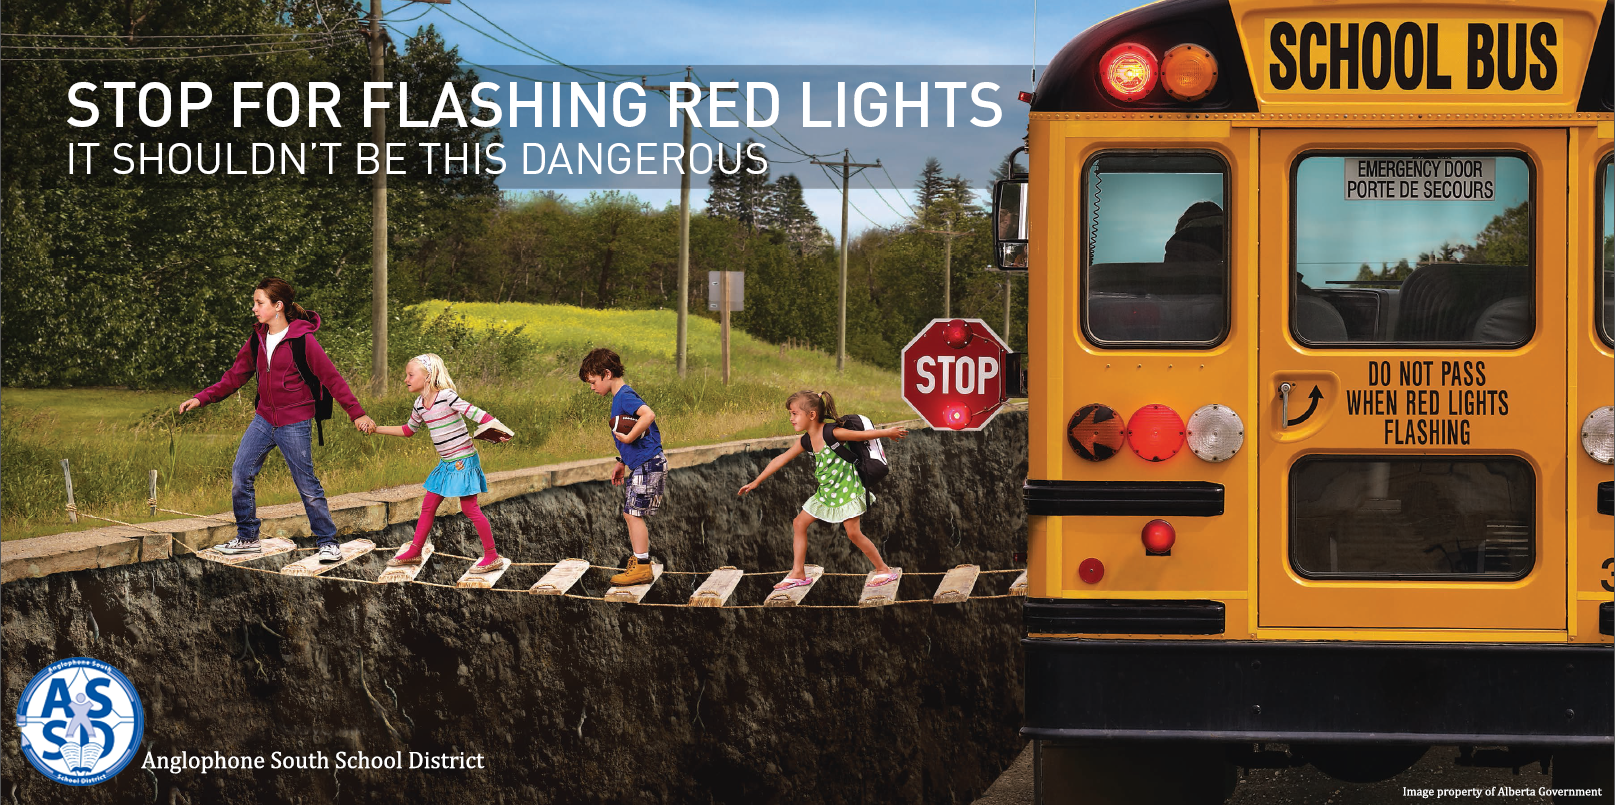 Concerns About School Bus Safety As Drivers Ignore Flashing Lights